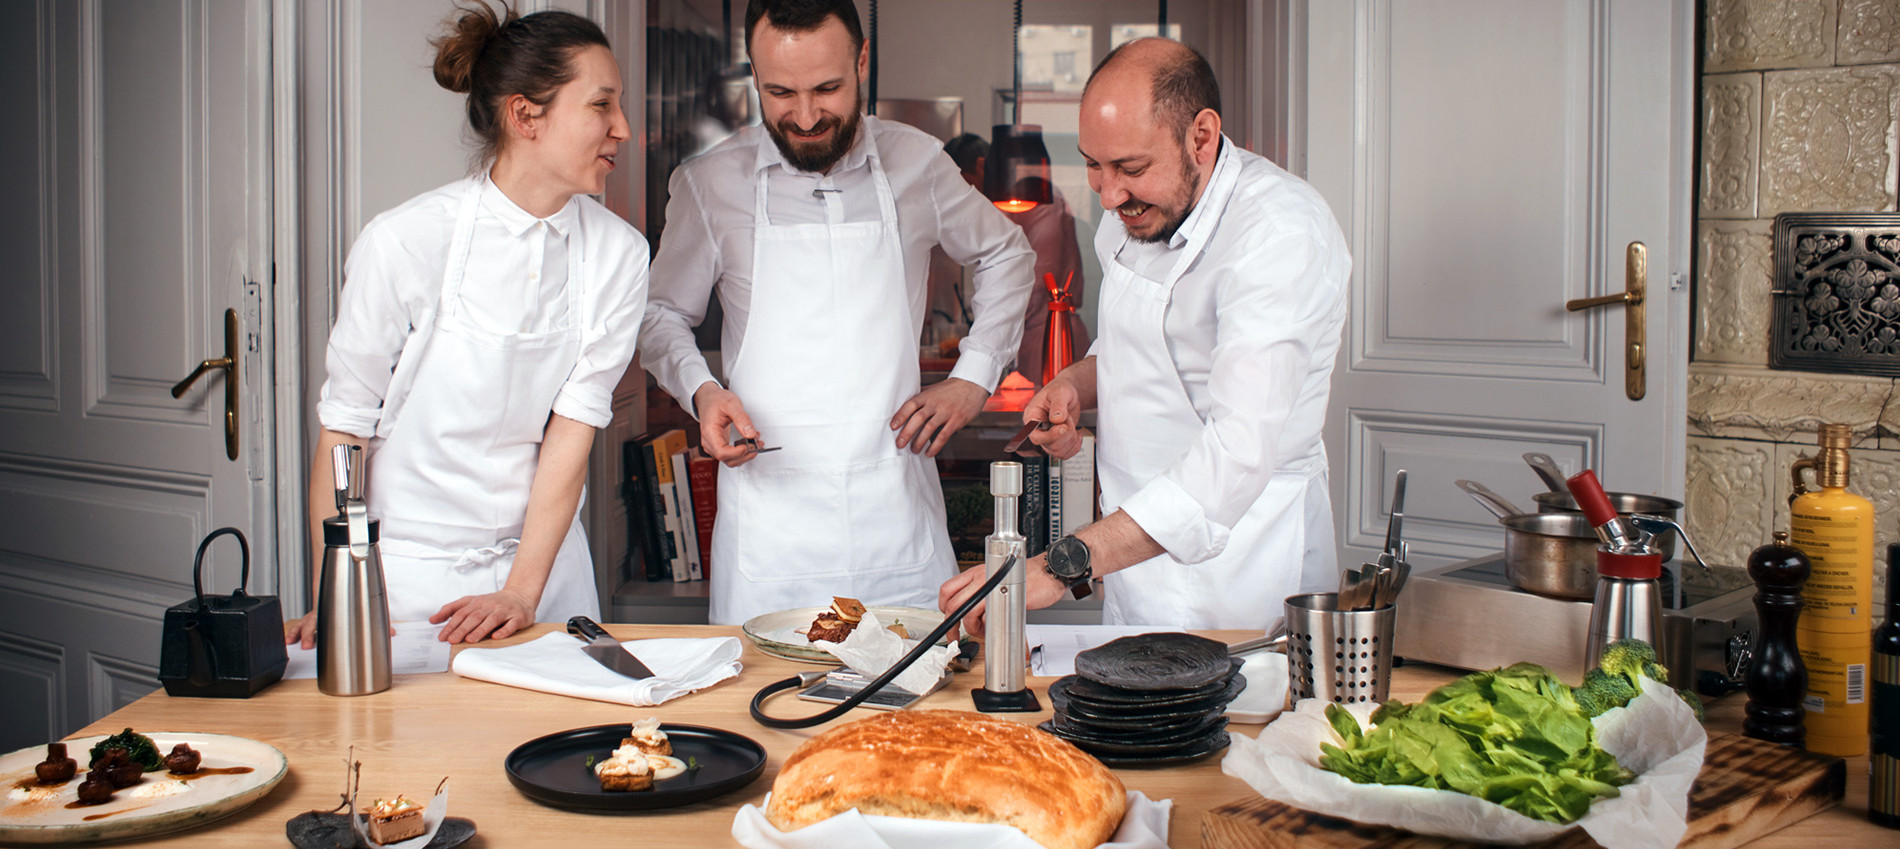 Workshop - New Balkan Cuisine